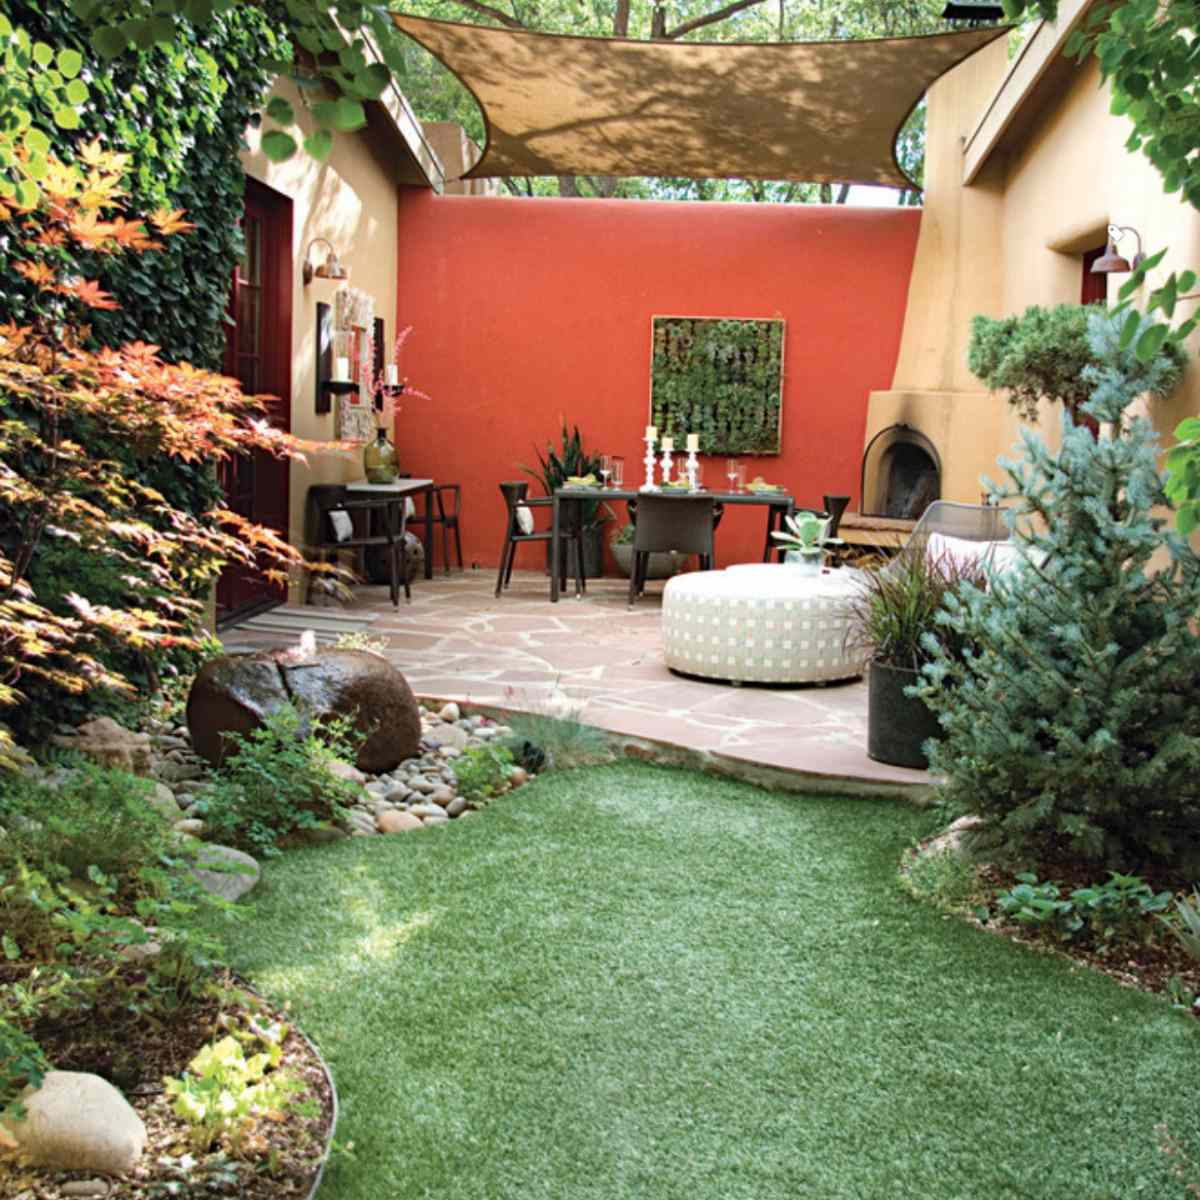 Shade landscape highlighted by outdoor seating area.